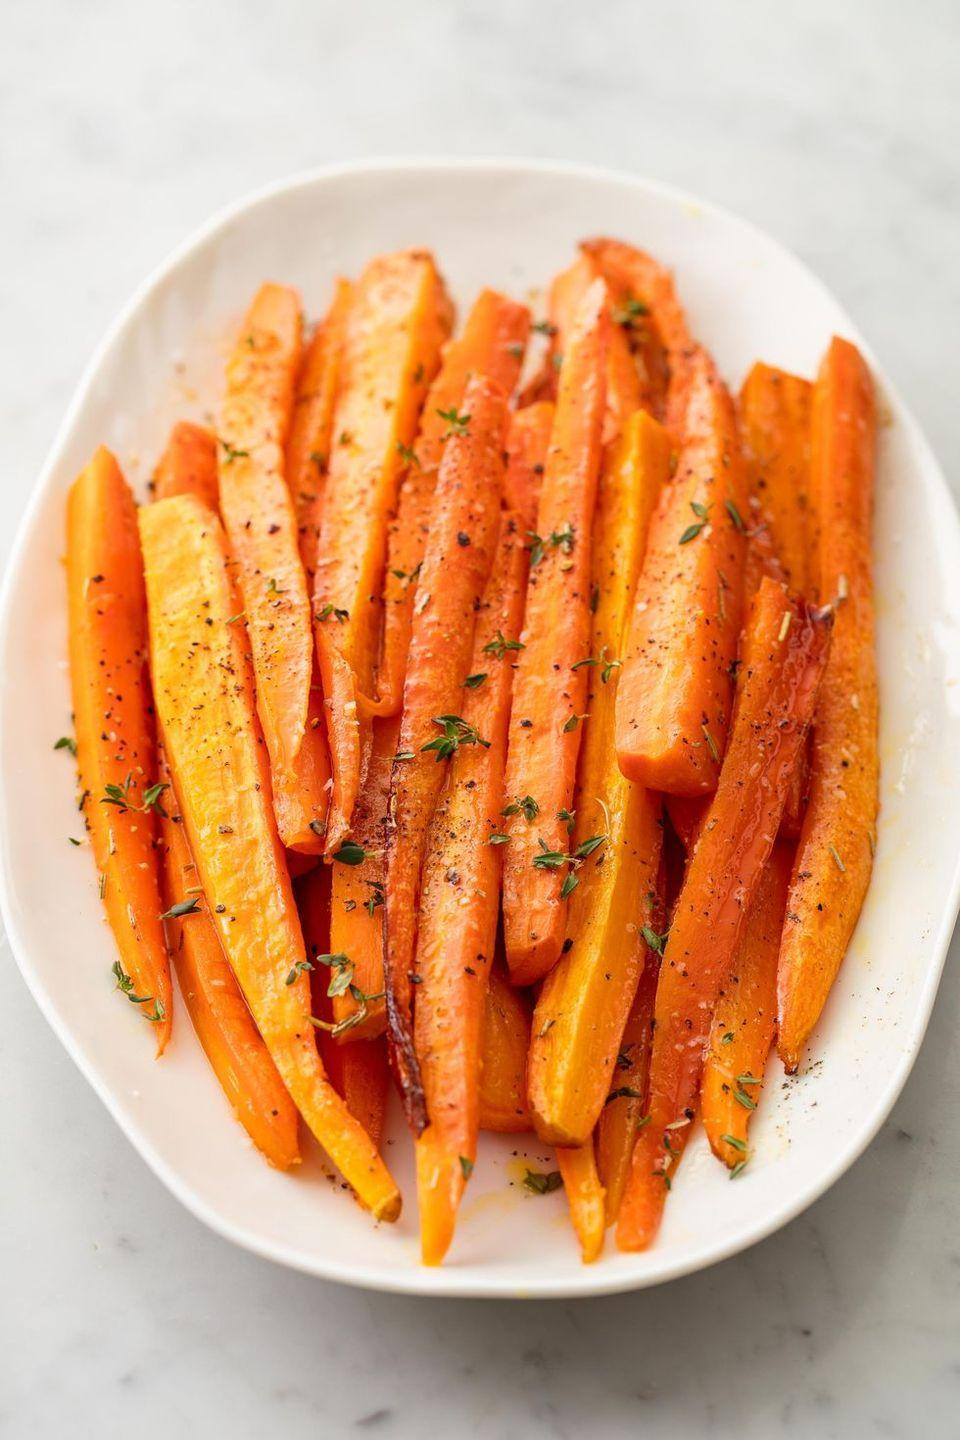 """<p>How do you show picky eaters how delicious vegetables can be? The answer is two-part: First, you make a sweet and sticky glaze; then, you roast. in the oven, the honey butter caramelises and turns plain, boring carrots into the most addictive side dish. </p><p>Get the <a href=""""https://www.delish.com/uk/cooking/recipes/a28934289/honey-glazed-carrots-recipe/"""" rel=""""nofollow noopener"""" target=""""_blank"""" data-ylk=""""slk:Honey-Glazed Carrots"""" class=""""link rapid-noclick-resp"""">Honey-Glazed Carrots</a> recipe.</p>"""